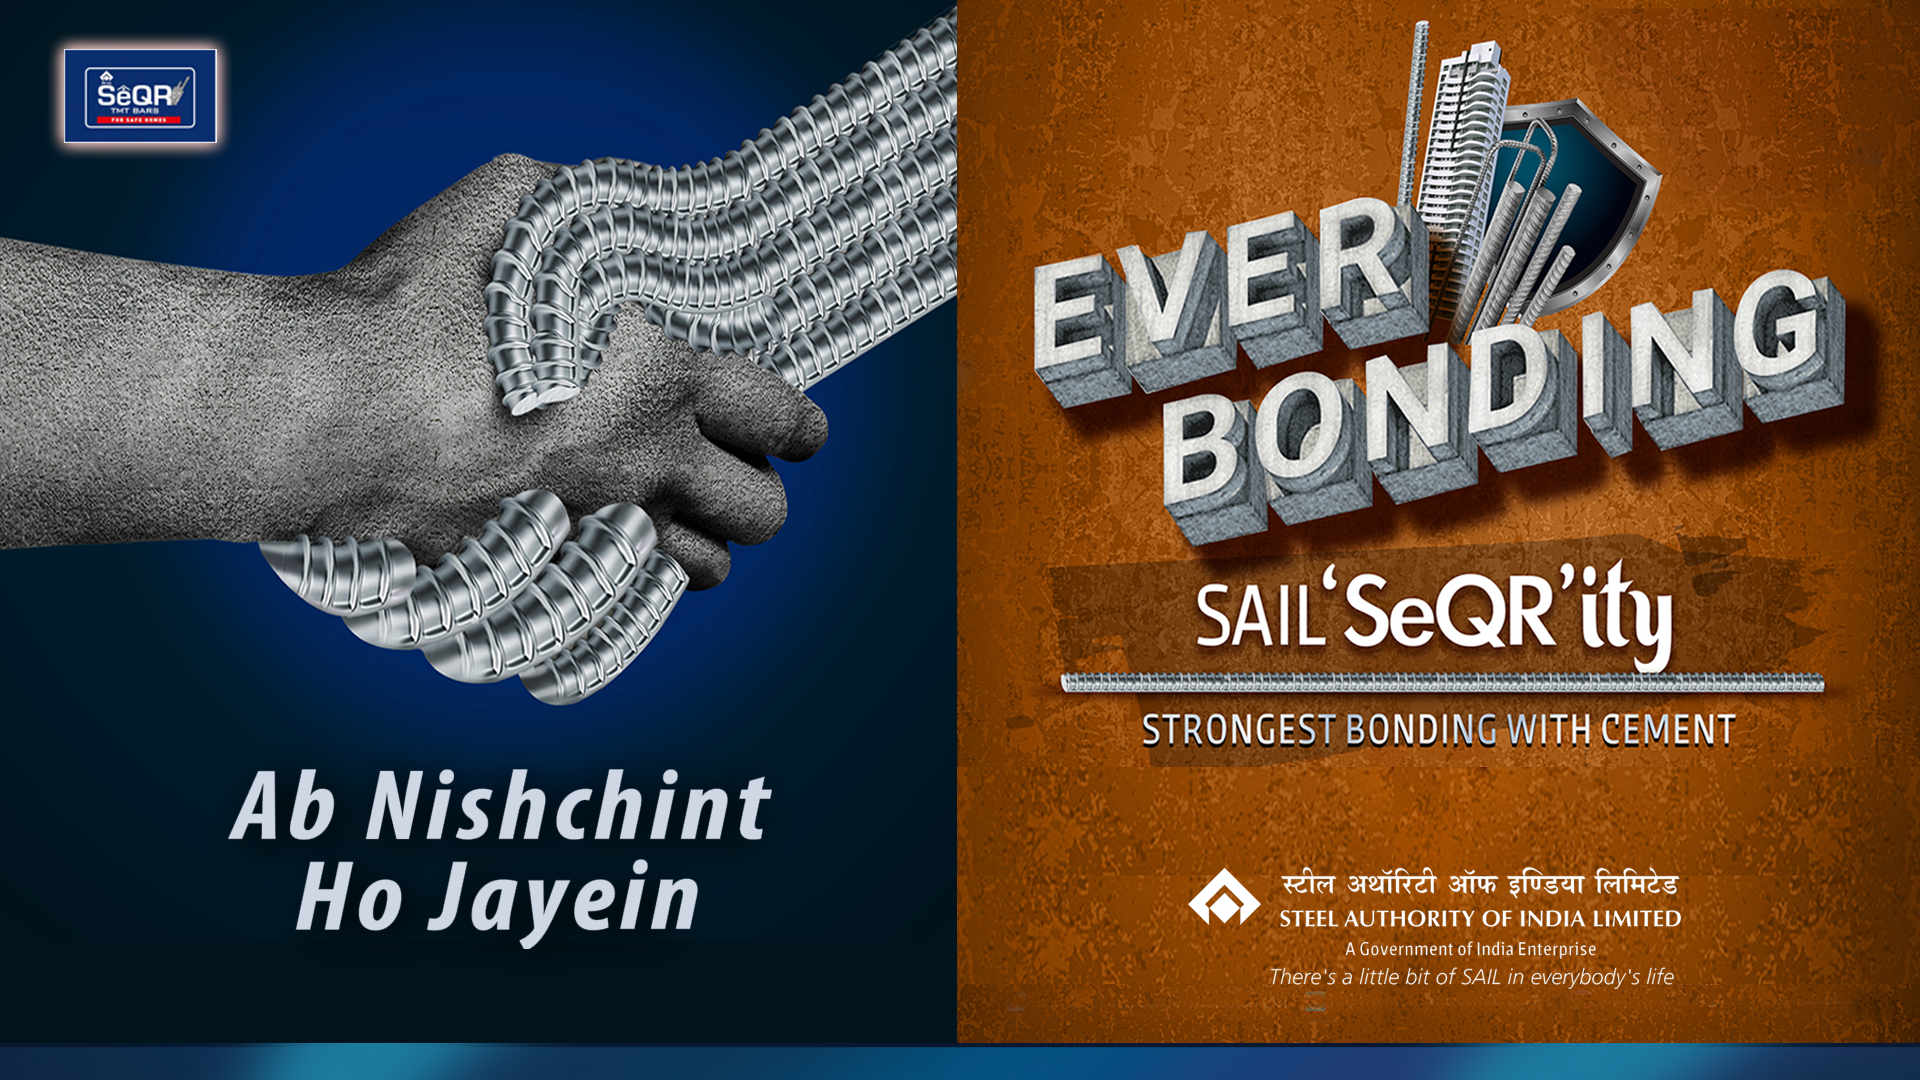 Everybonding SAIL SeQrity